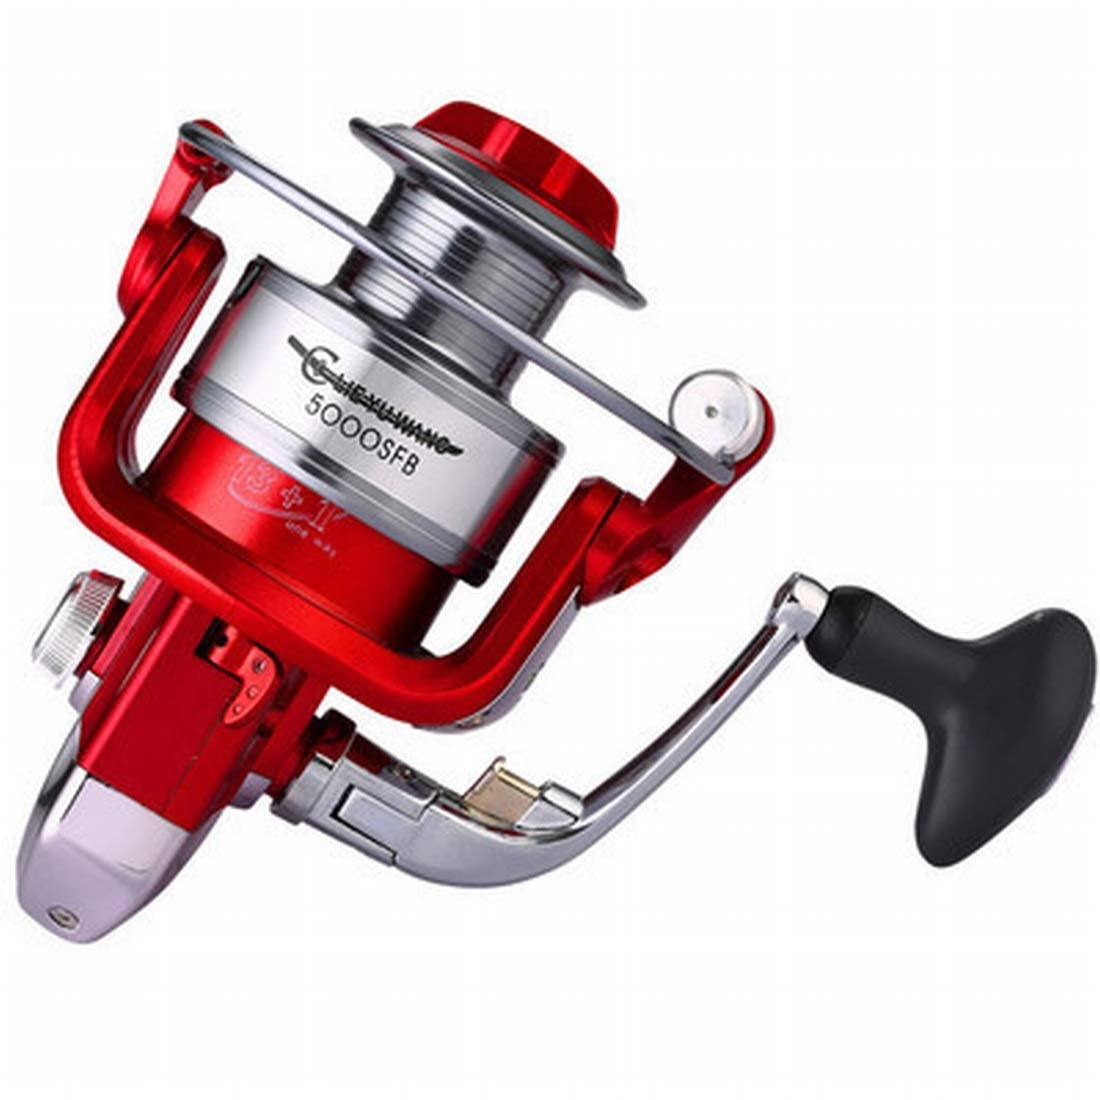 1000 Sinngukaba Spinning Fishing Reel 1000 to 7000 High Capacity Left Right Interchangeable Spinning Reels Saltwater Freshwater Fishing (Specification   1000)